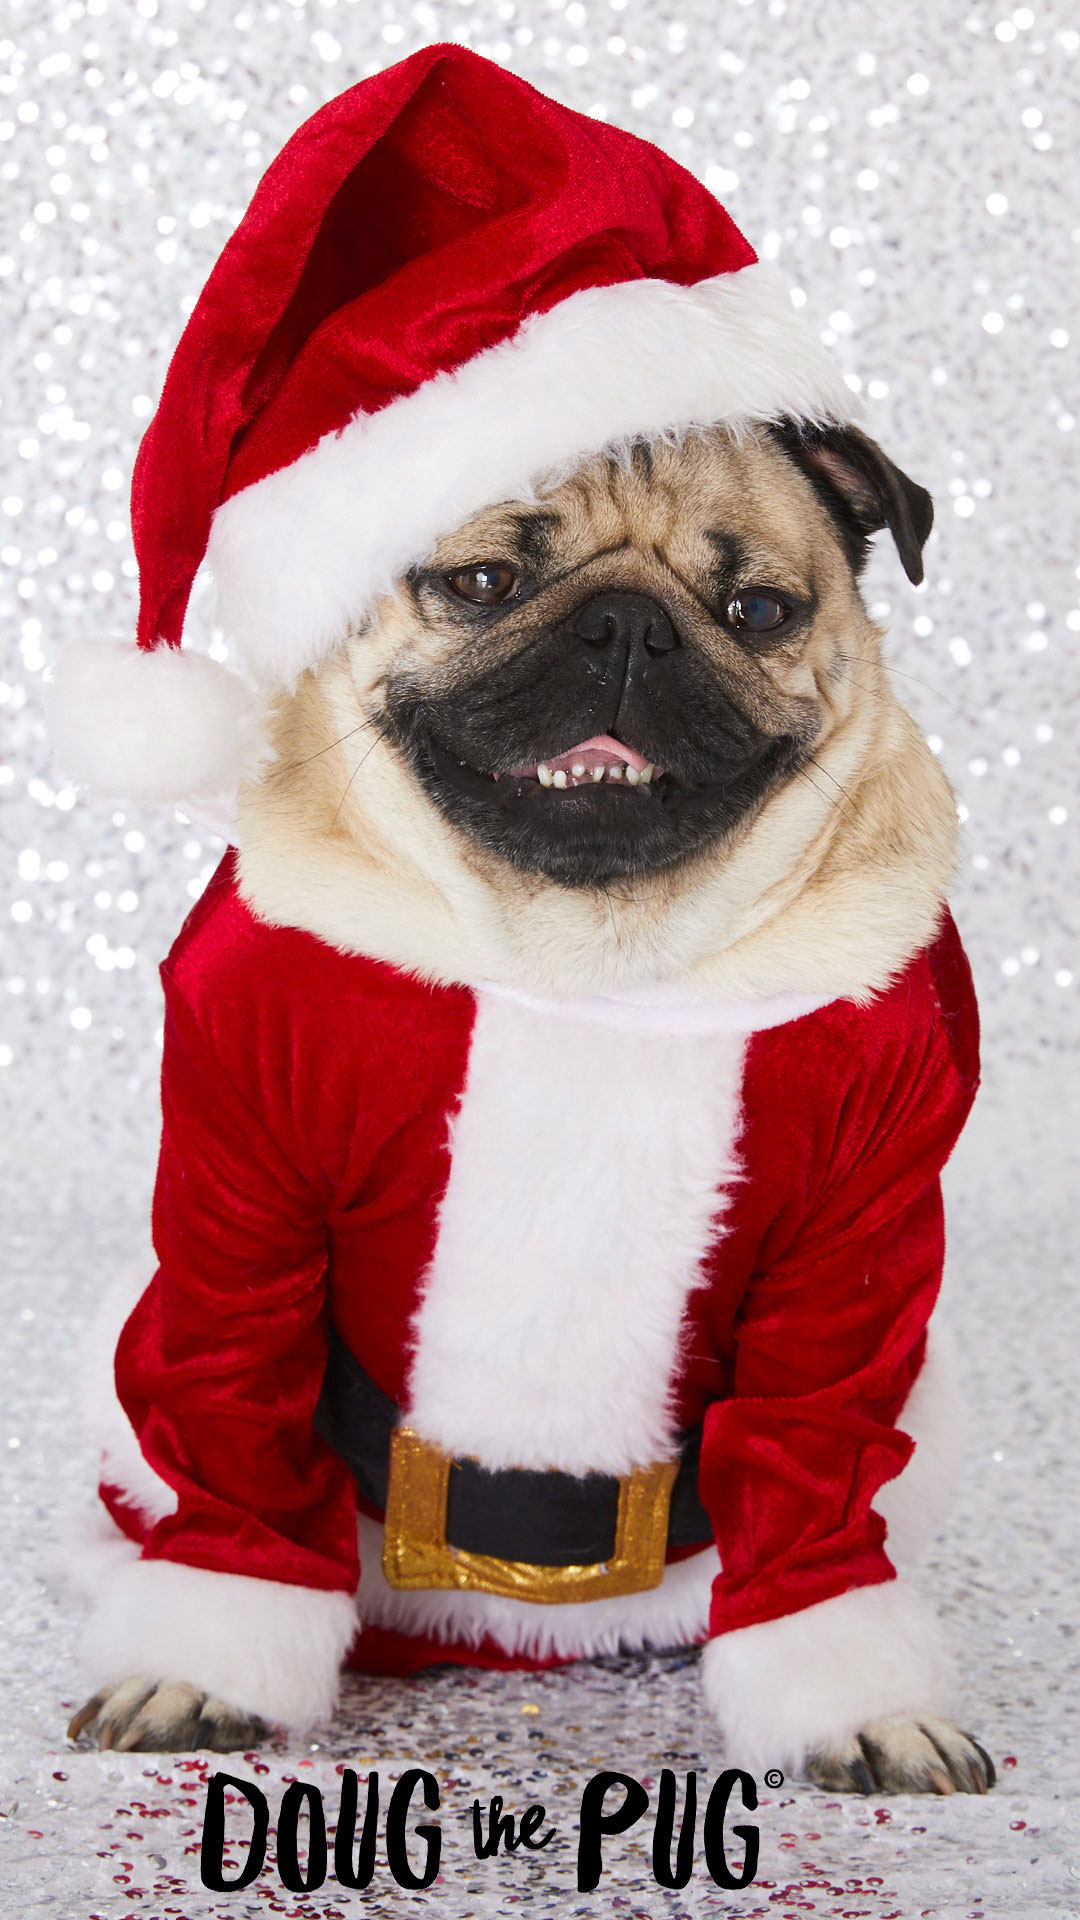 First Iphone Wallpaper For Iphone X Free Doug The Pug Christmas Wallpapers Clairesblog